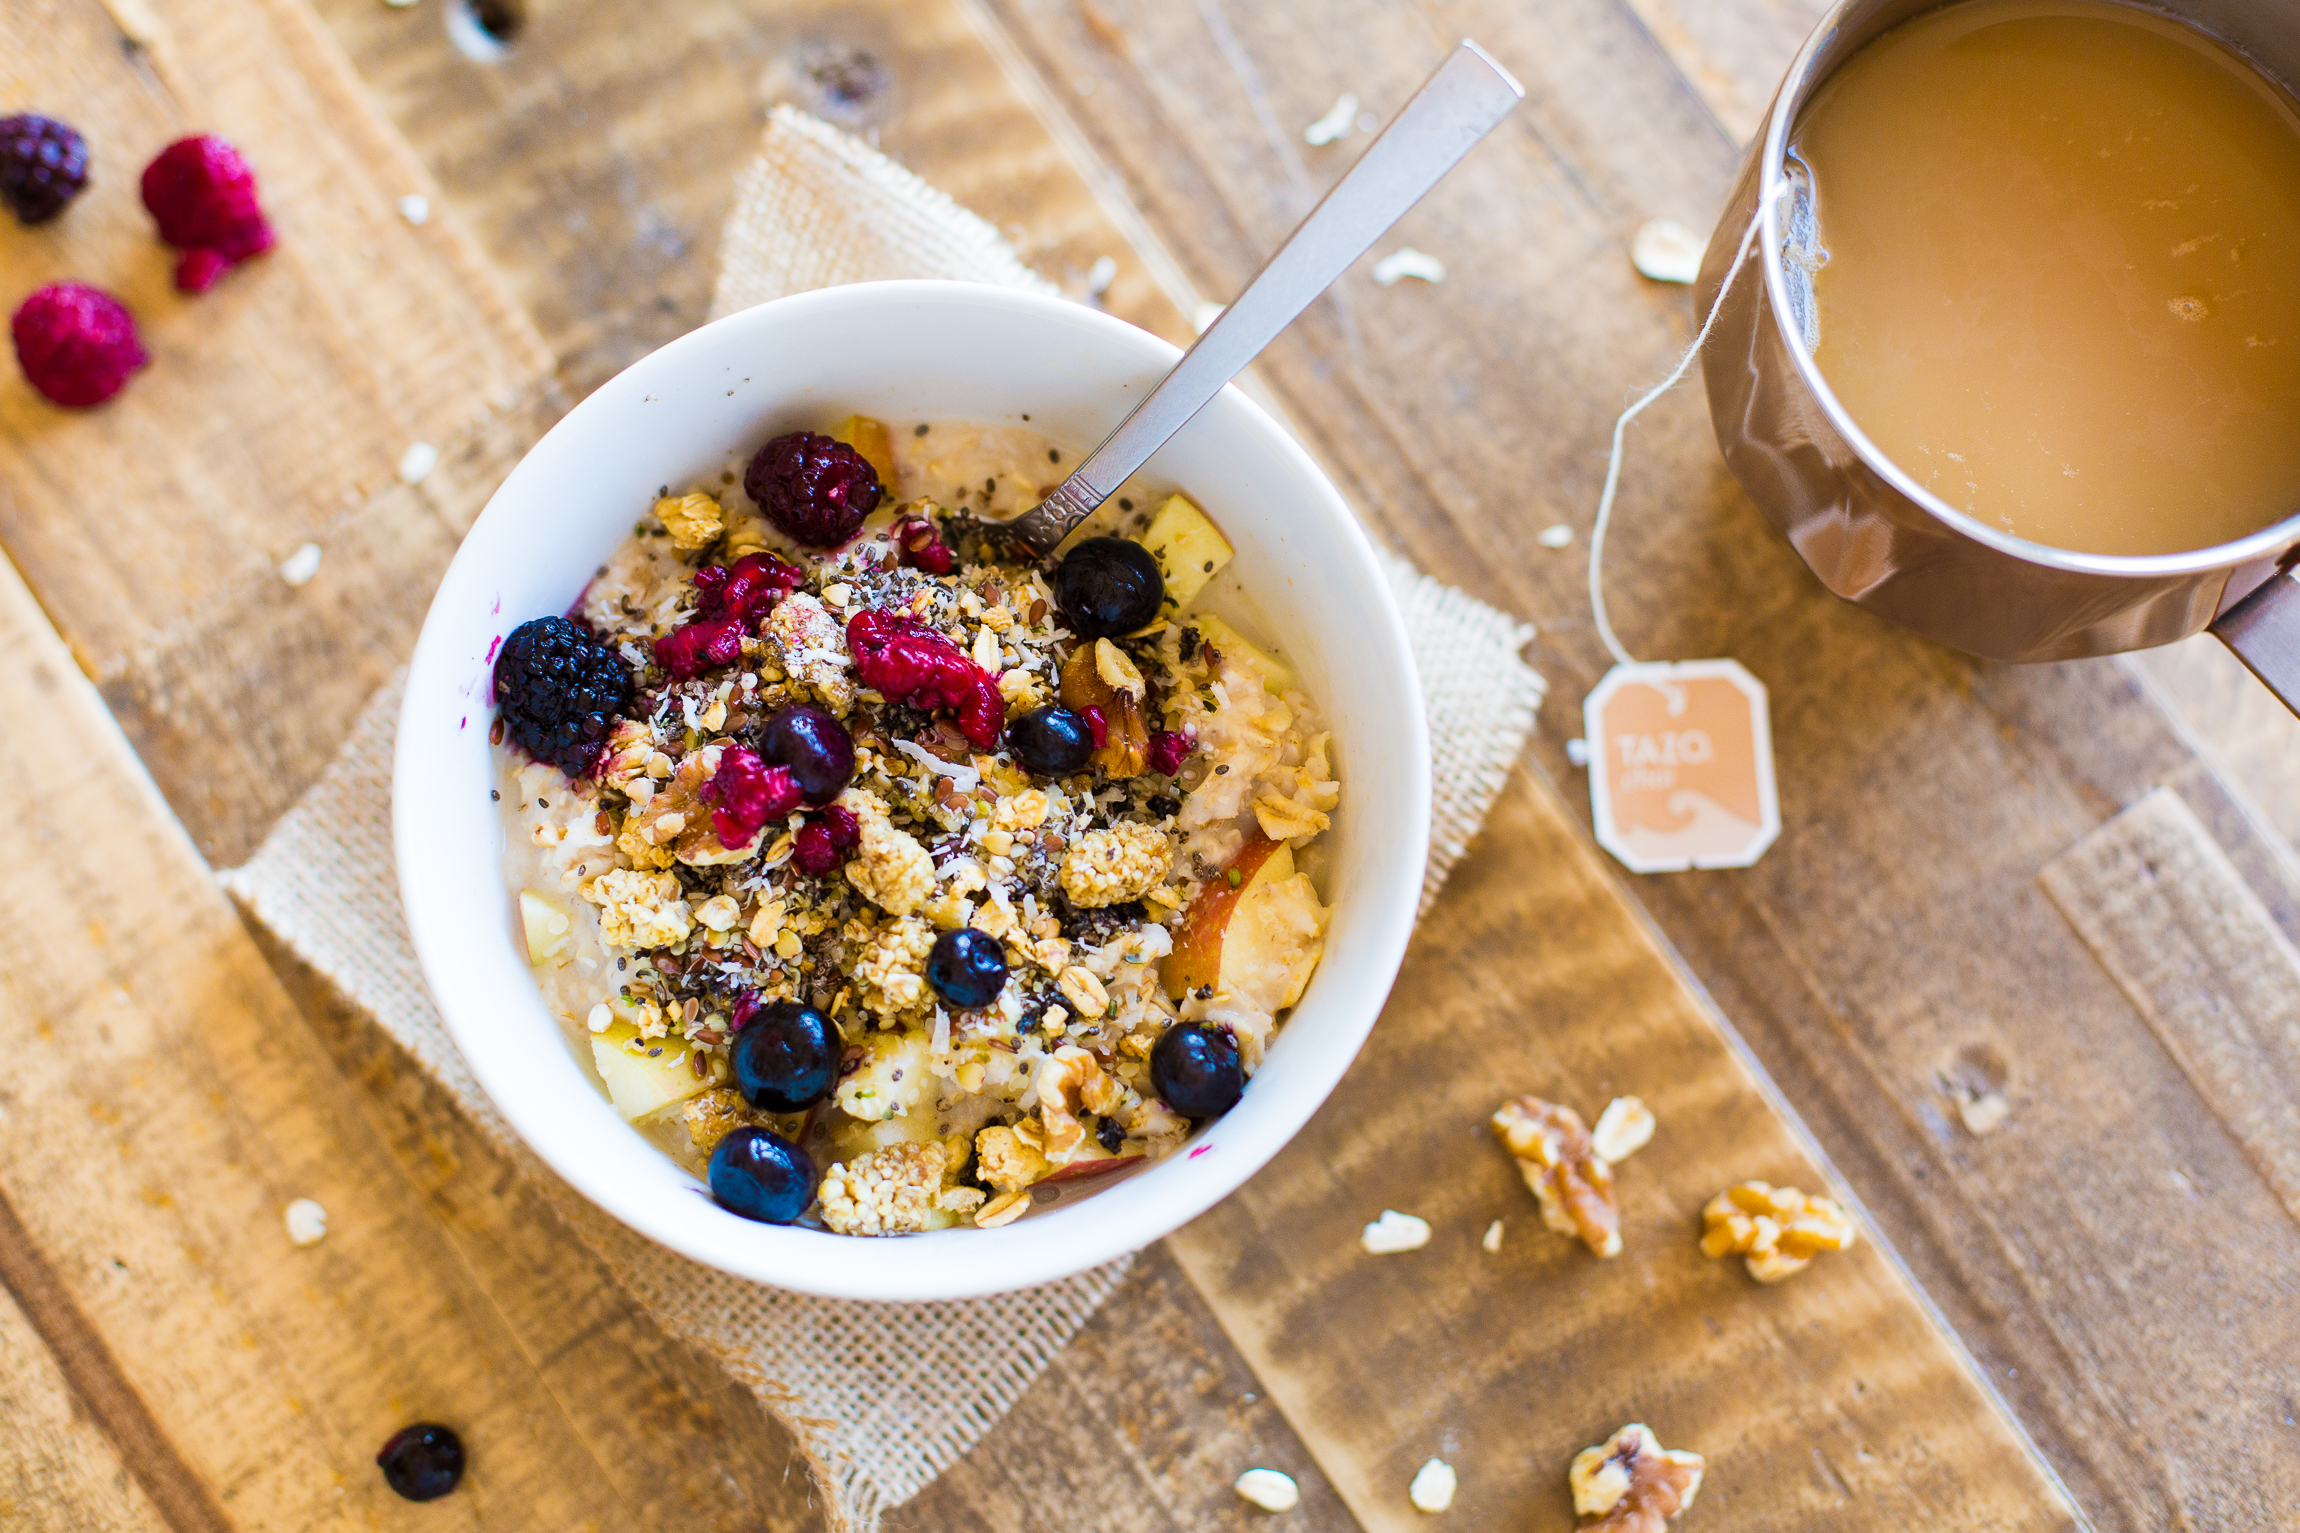 This hearty breakfast clocks in at a mere 294 calories with the added bonus of a healthy dose of 57 grams of carbohydrates to start your day out fulfilled, 8 grams of protein and only 10mg of sodium (my daily allowance is 1,490mg!).